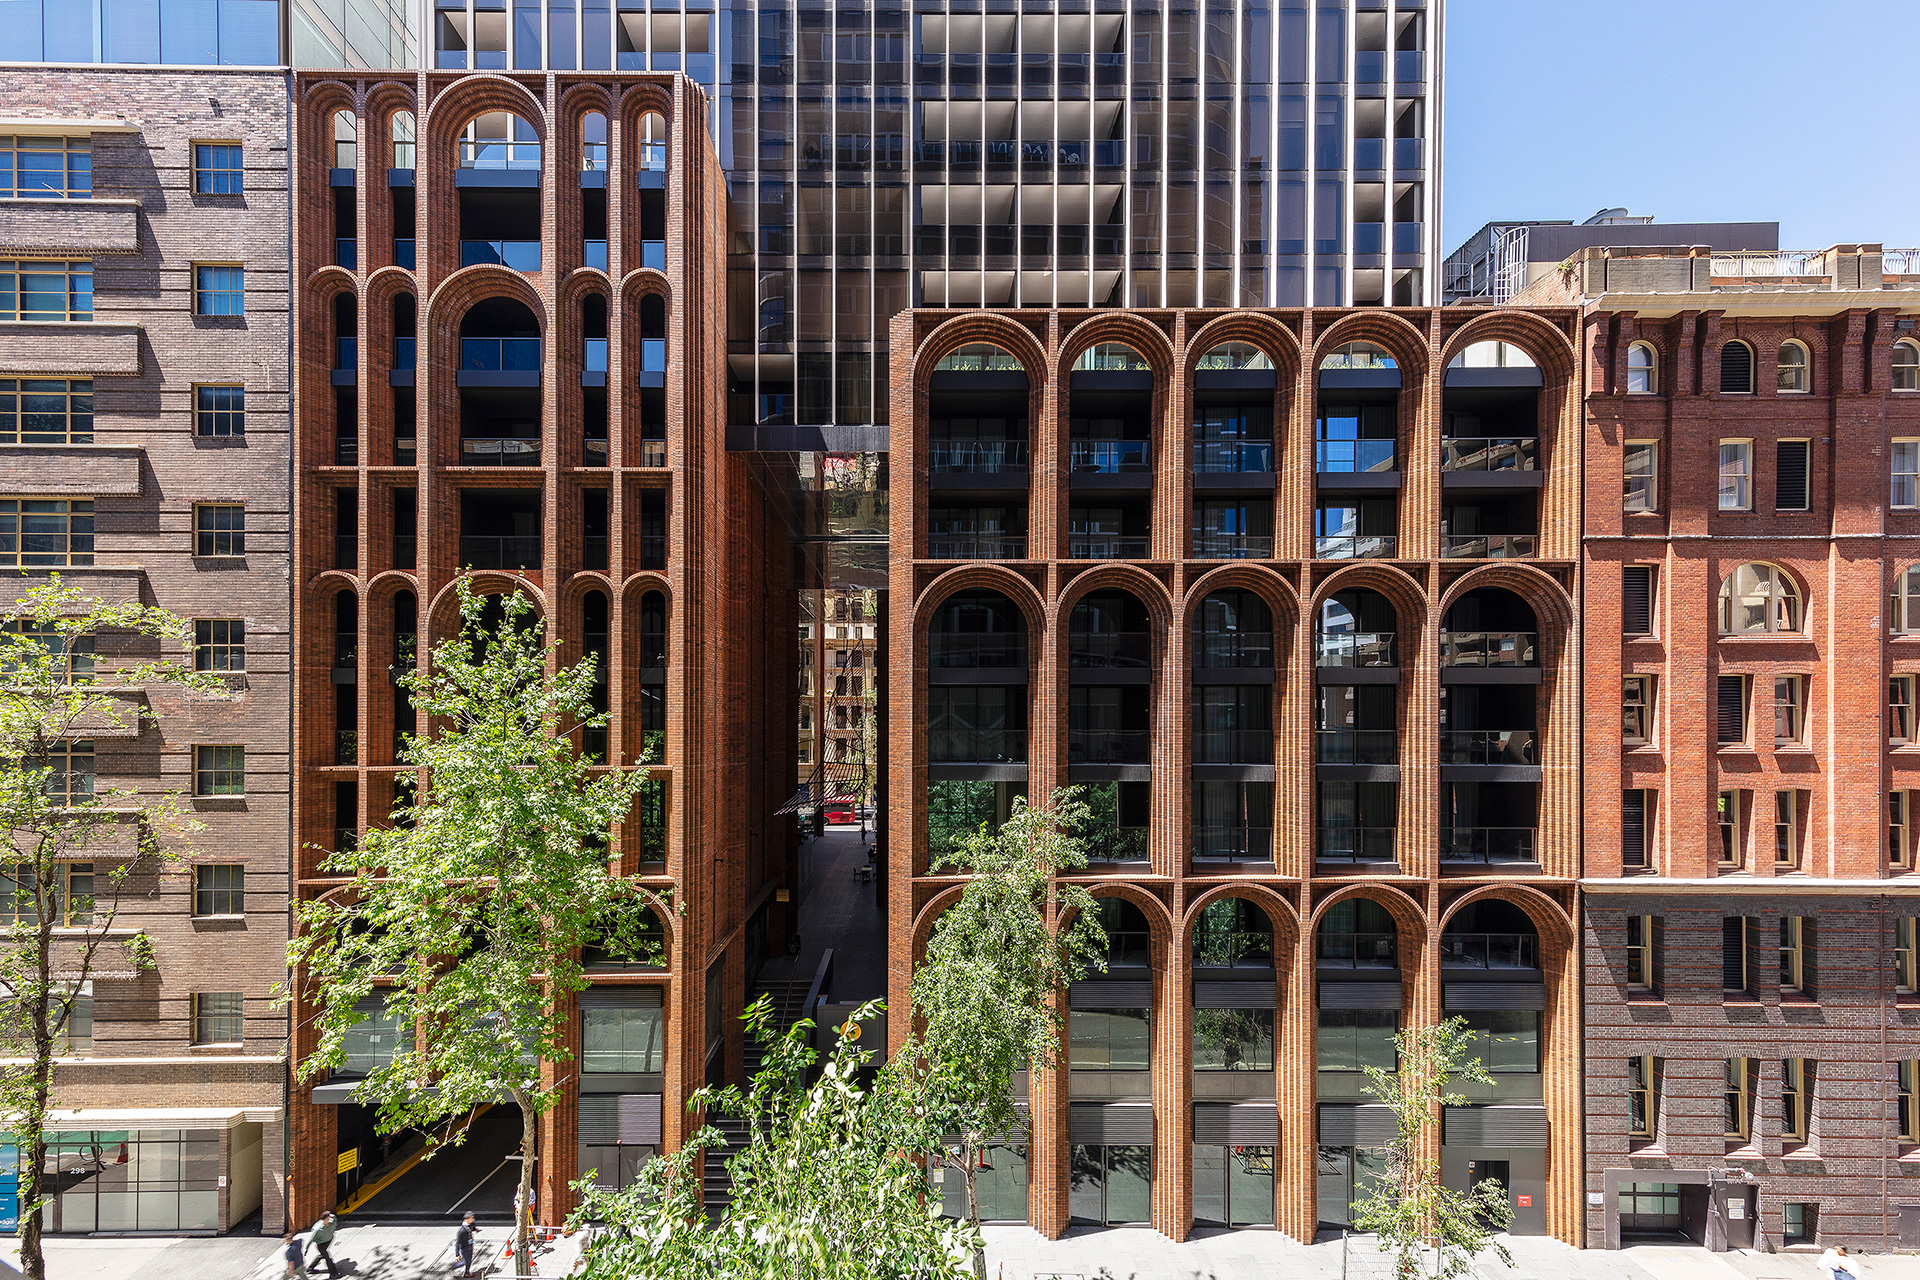 Kent Street elevation of Arc | Arc |Koichi Takada Architects | Sydney | STIRworld